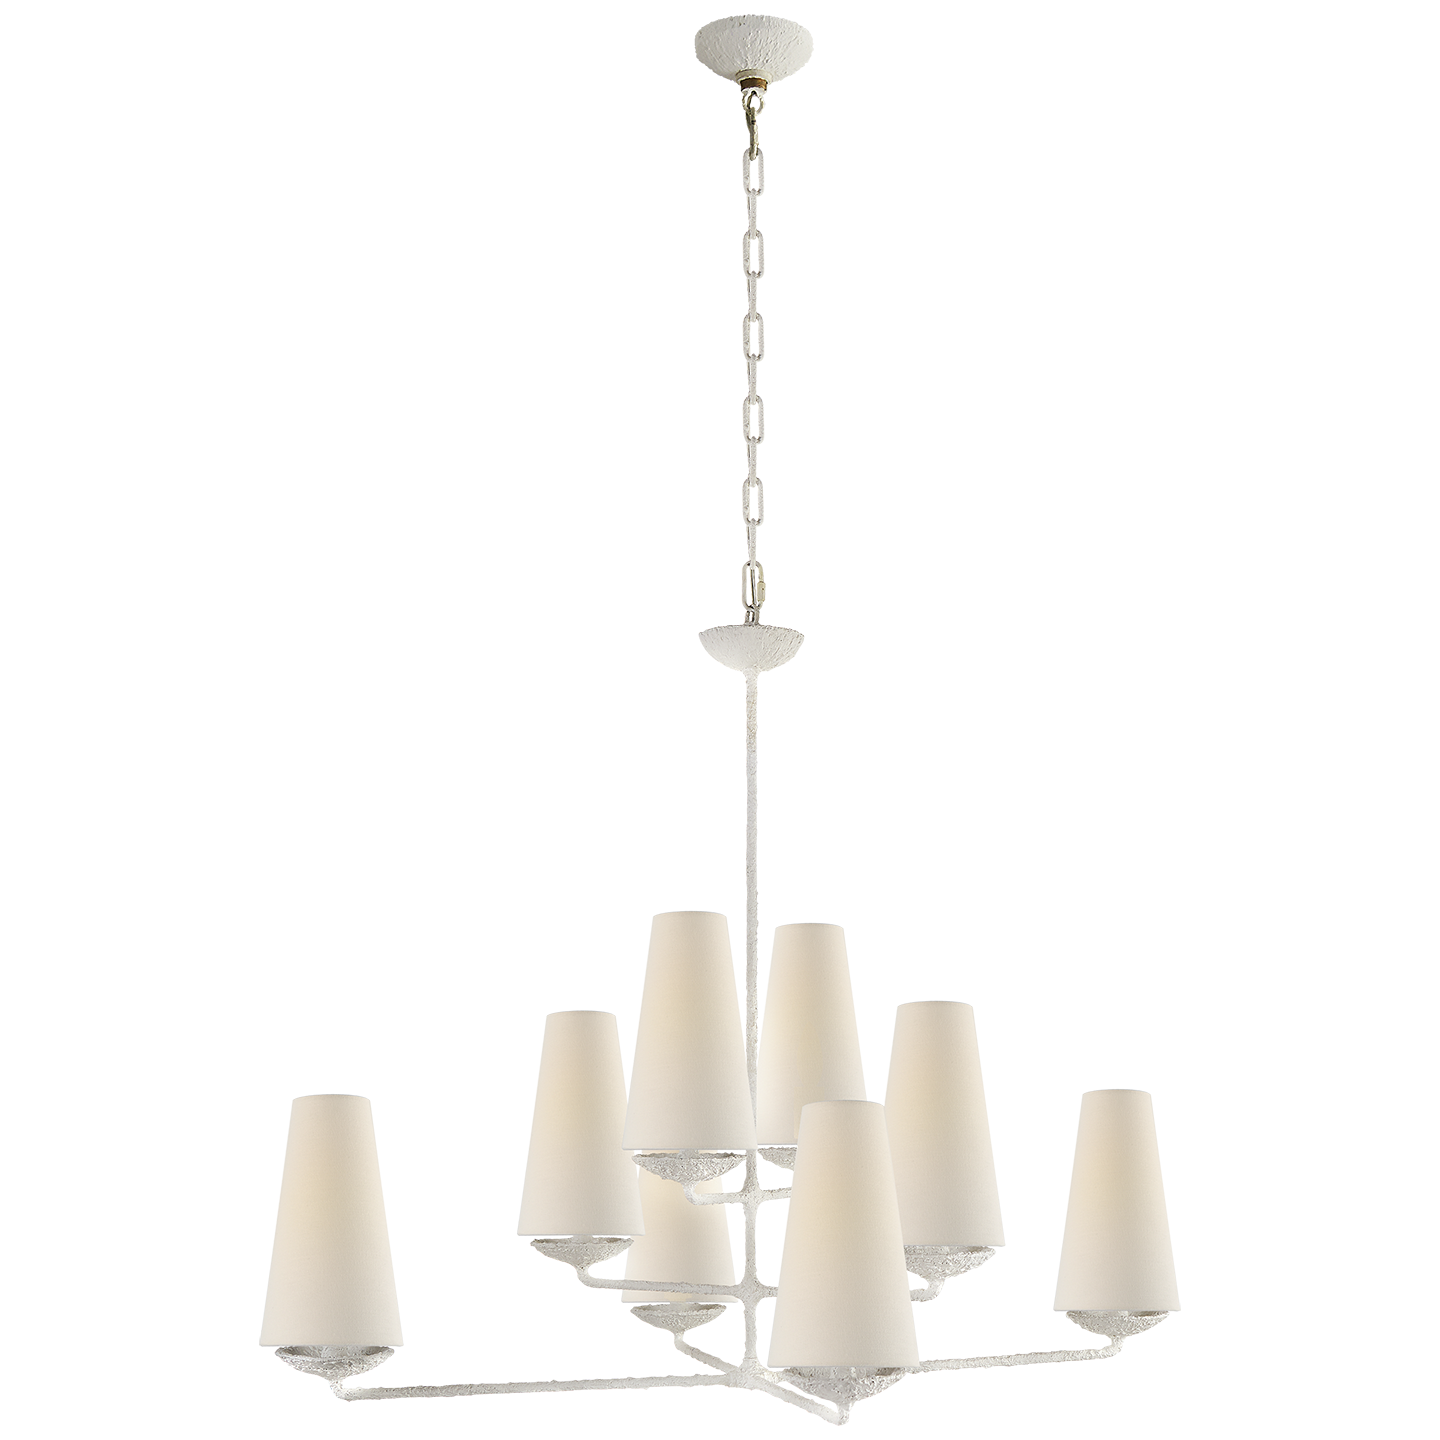 """Fontaine Large Offset Chandelier in Plaster White with Linen Shades Item # ARN 5205PL-L   Designer: AERIN Fixture Height: 33.5"""" Width: 35.5"""" Canopy: 5"""" Round Socket: 8 - E12 Candelabra Wattage: 8 - 40 B"""